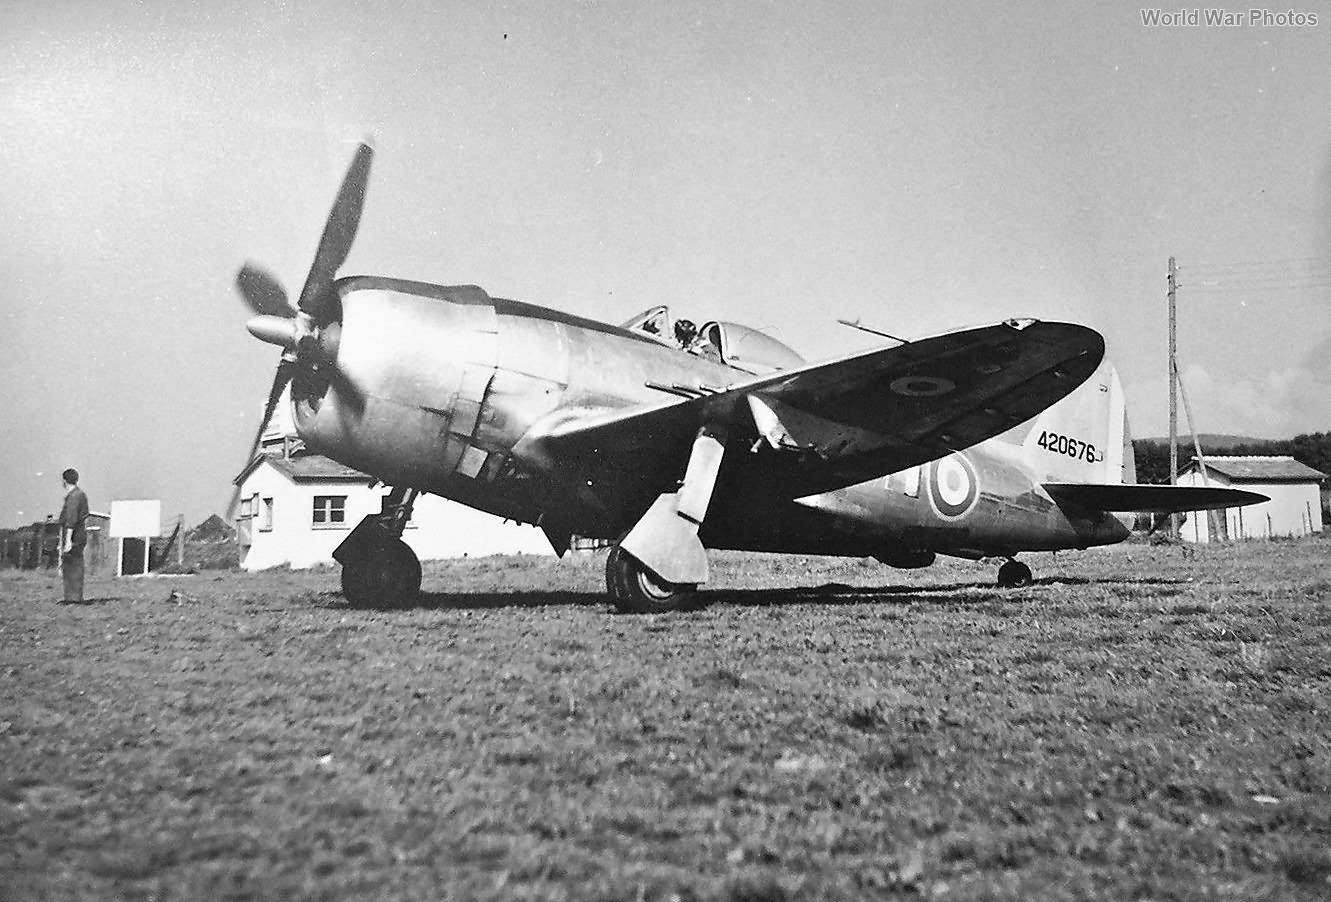 French P-47D 44-20676